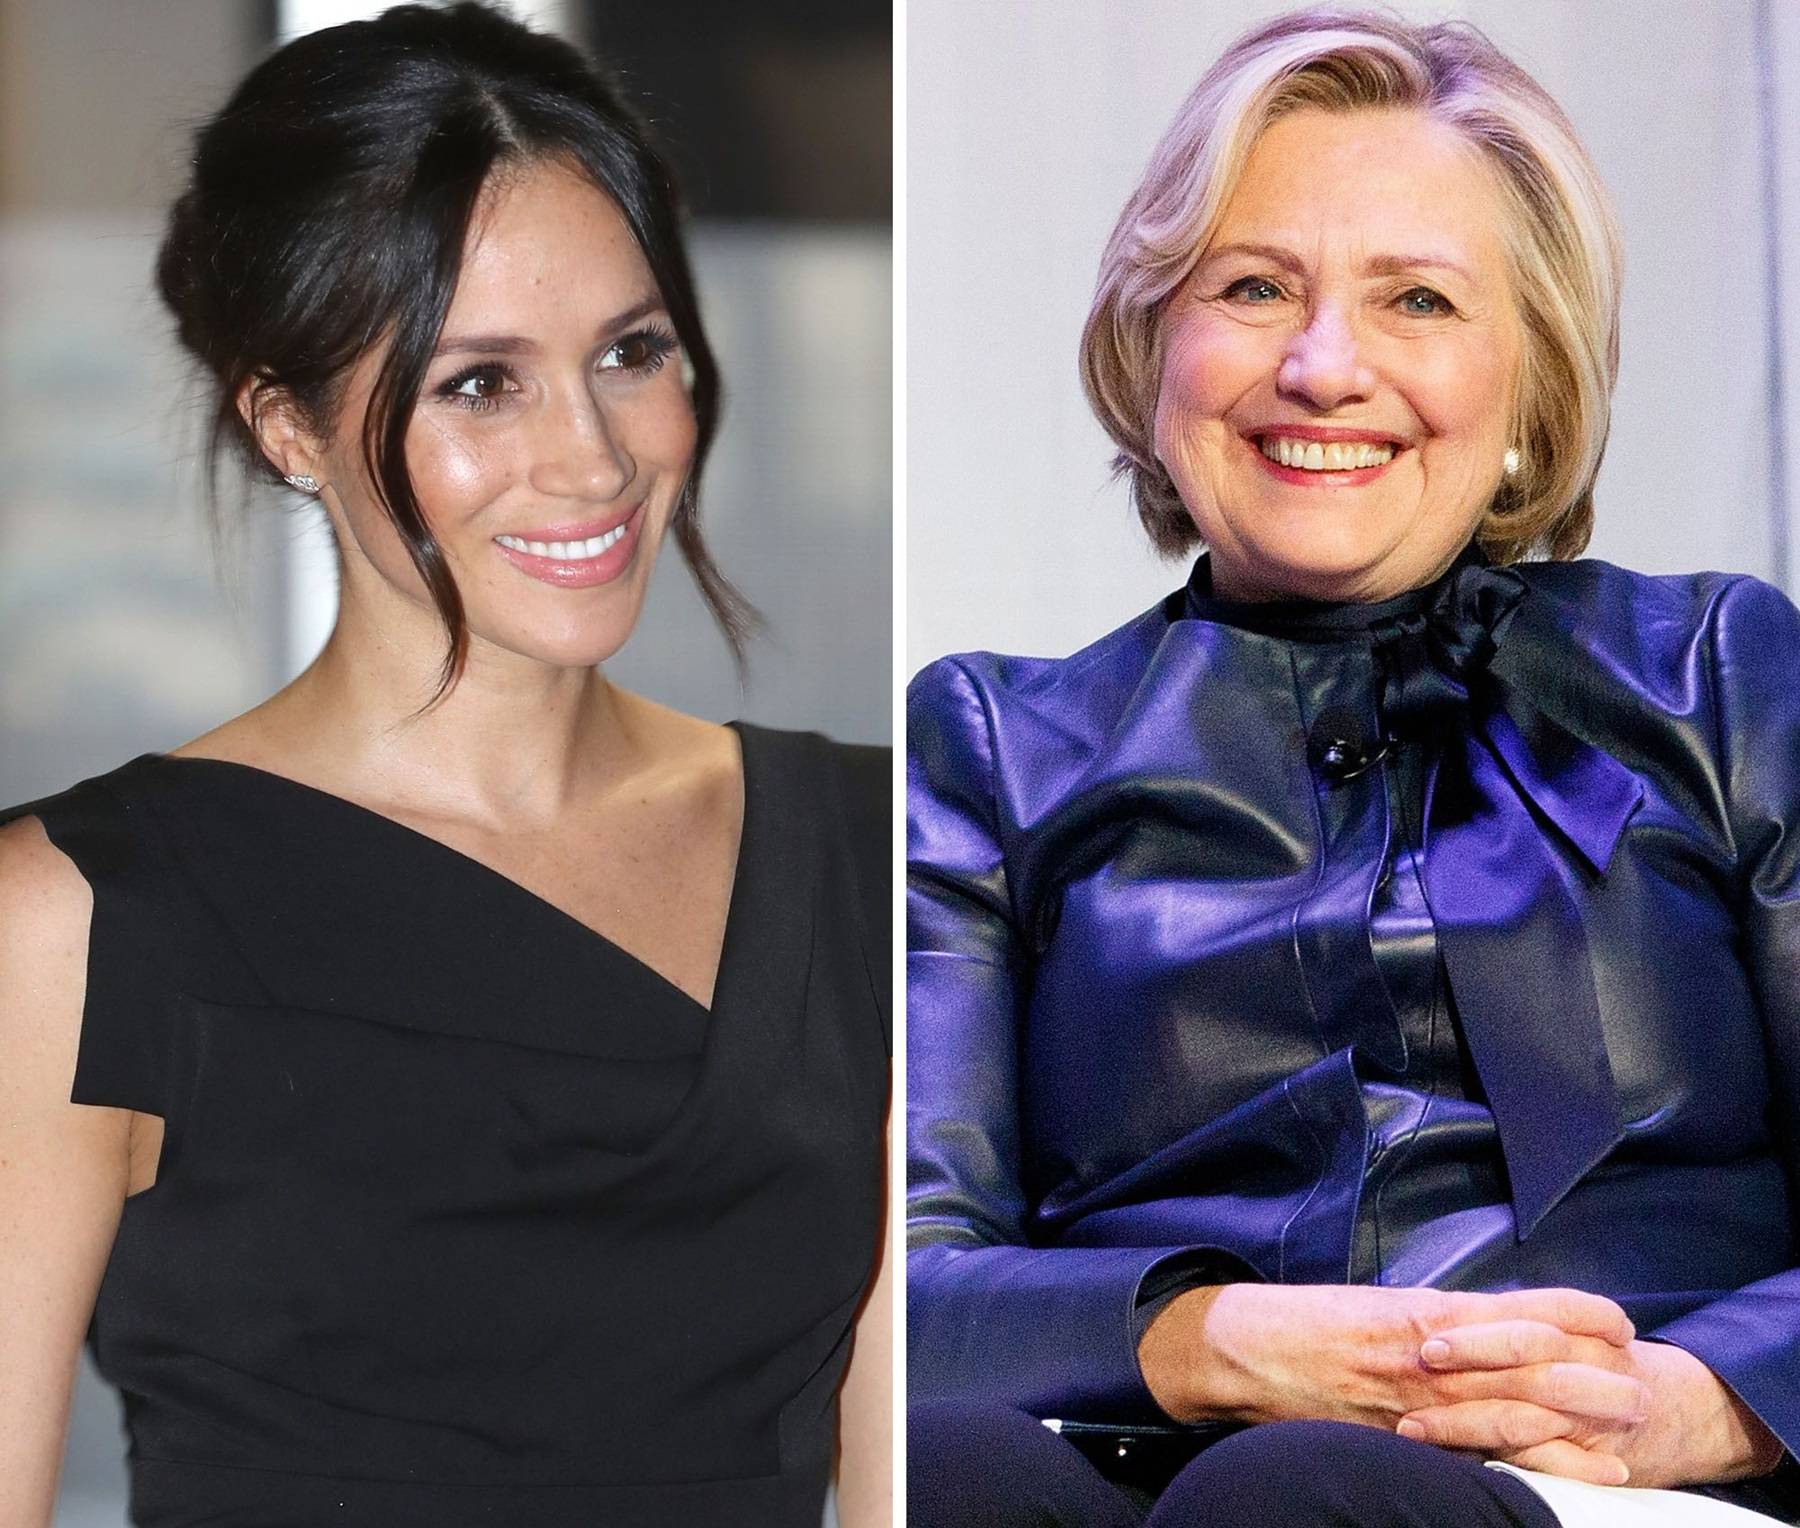 Meghan Markle Hillary Clinton Run For President